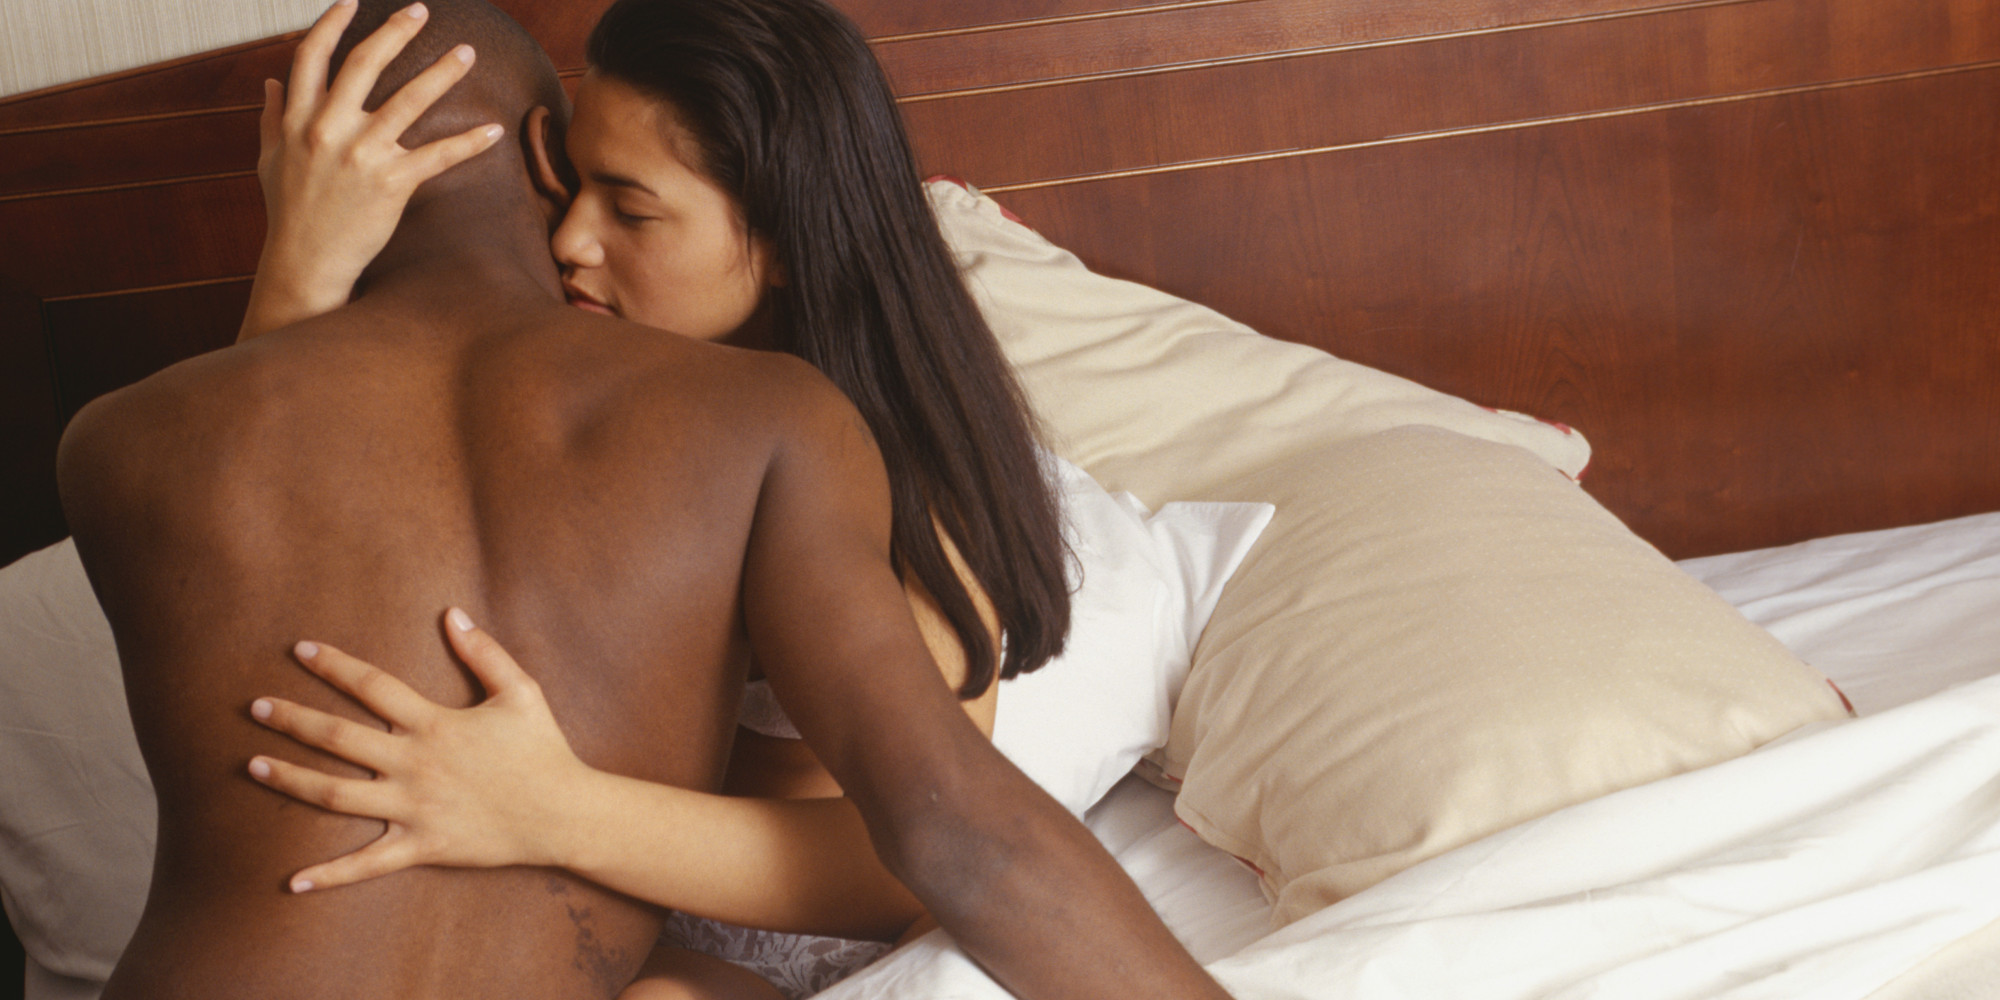 Black Men And Women Sex 107